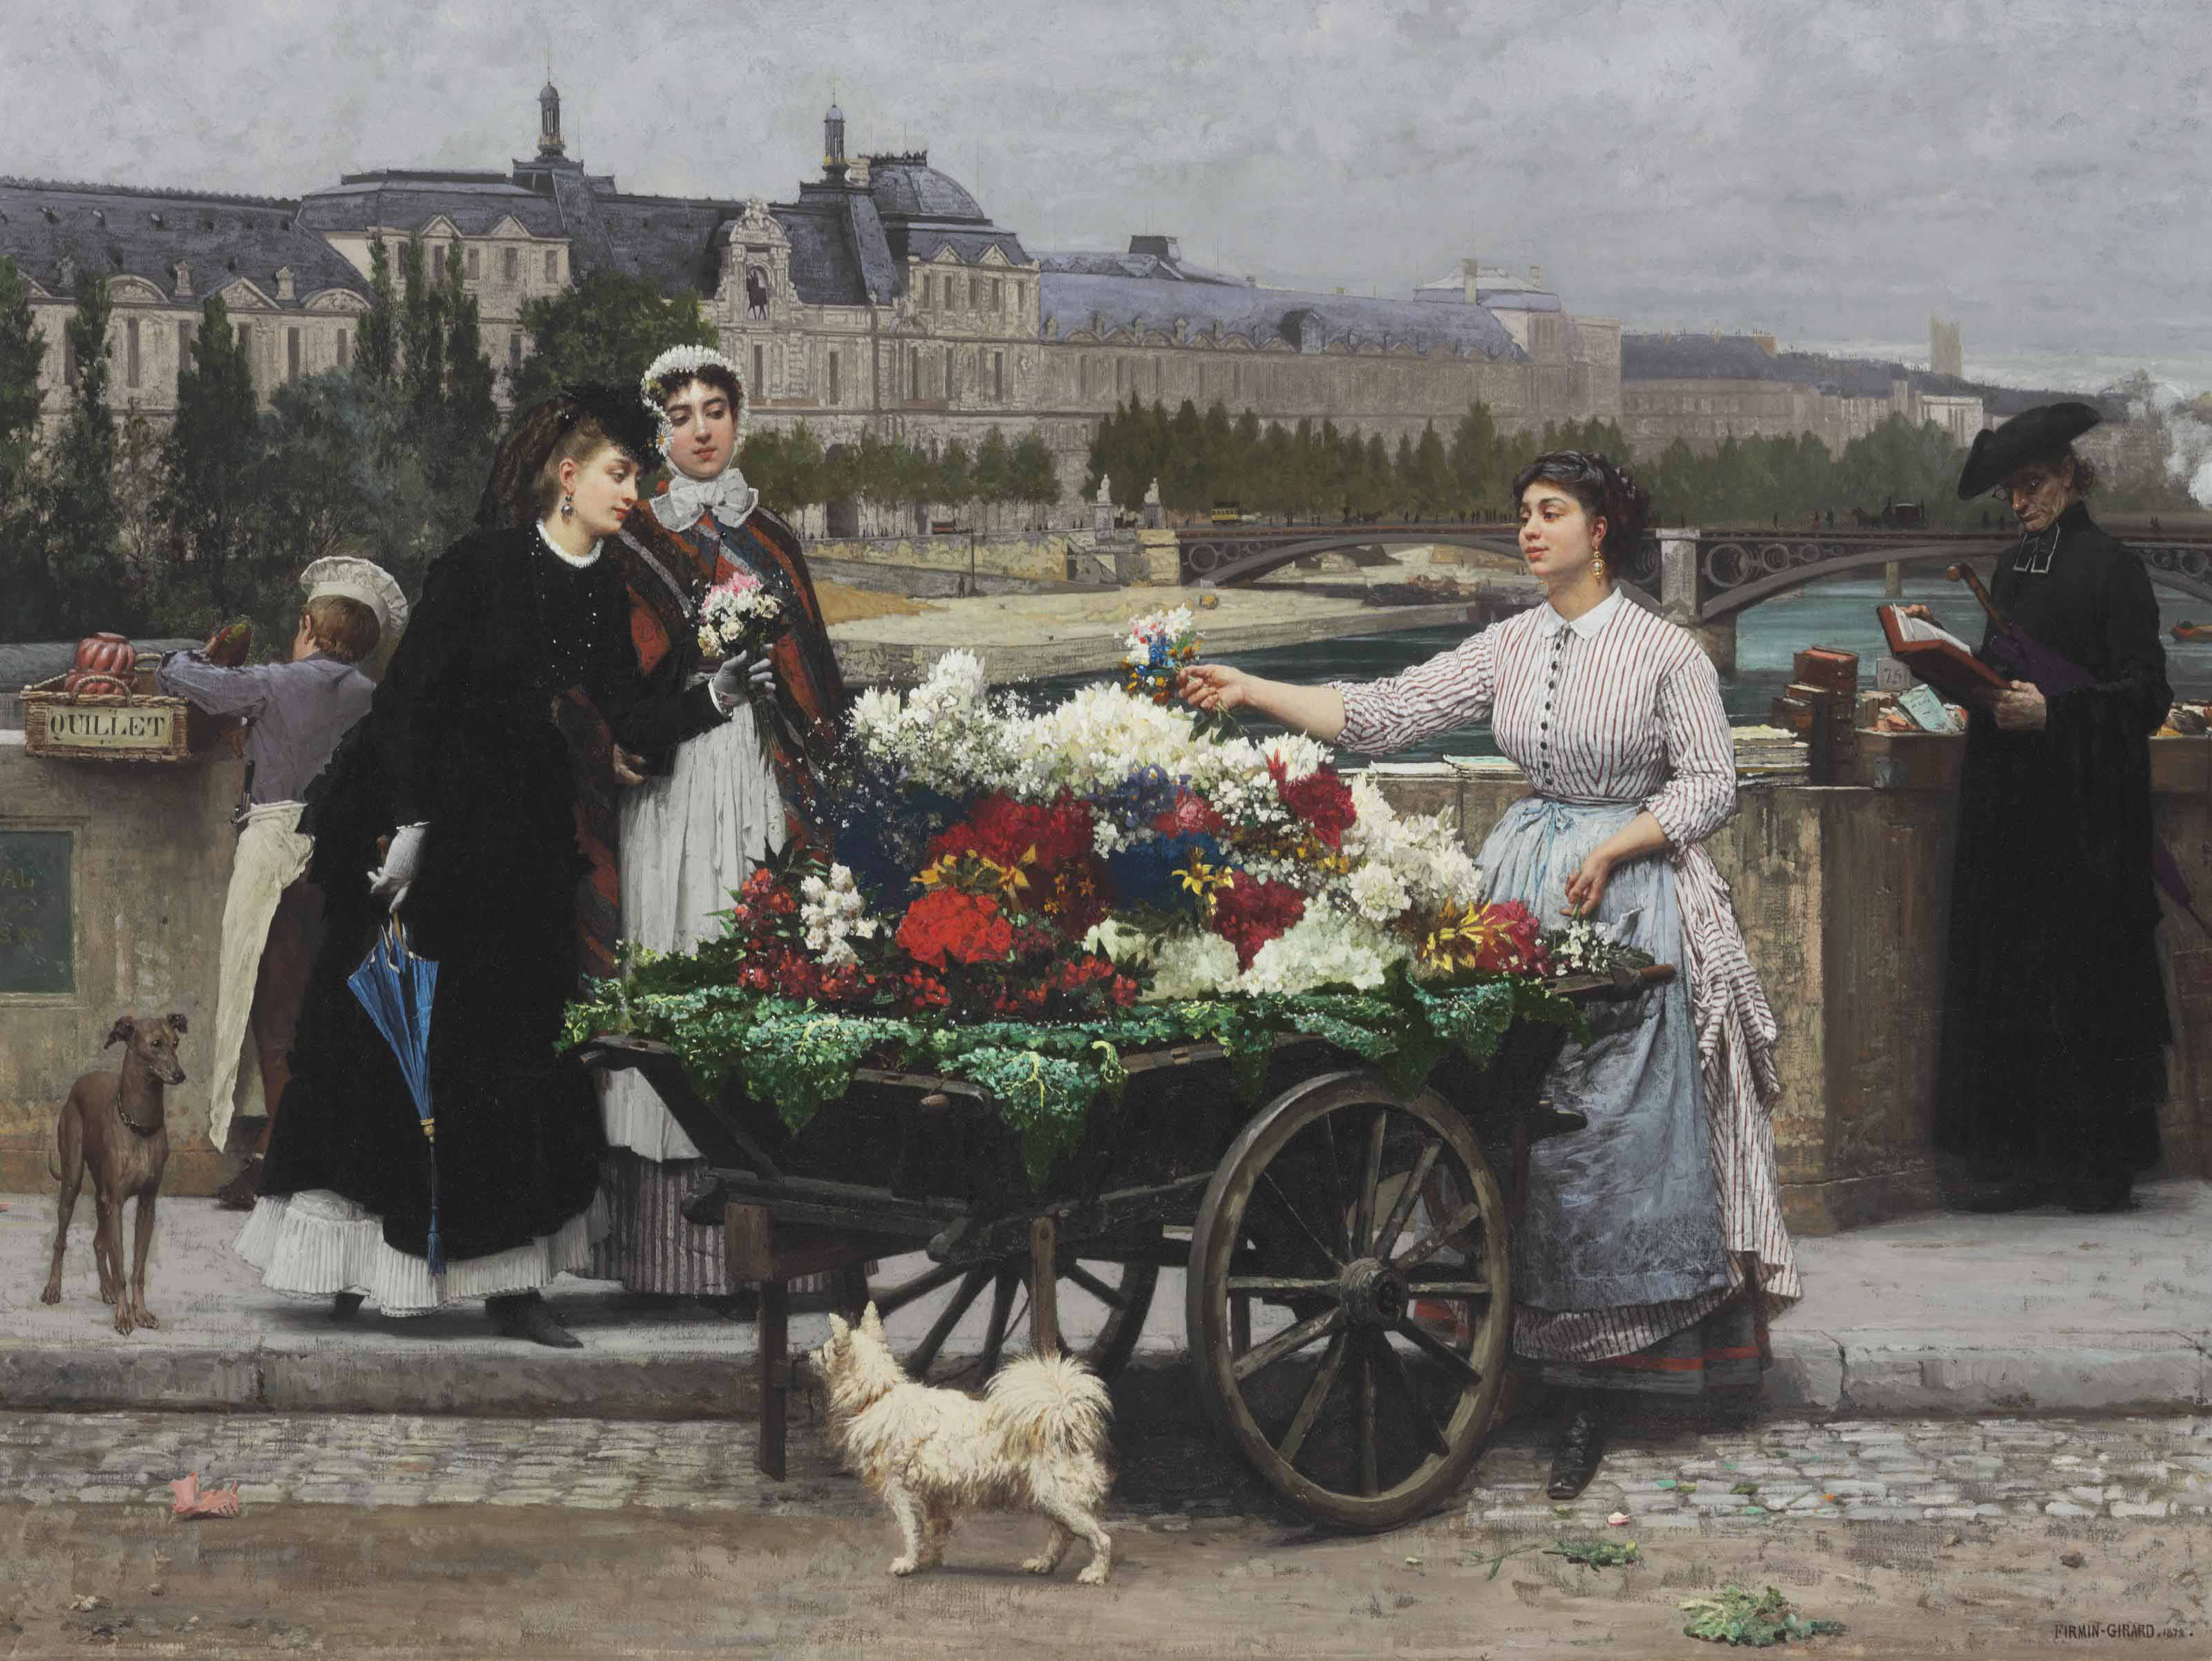 The Flower Seller on the Pont Royal with the Louvre beyond, Paris